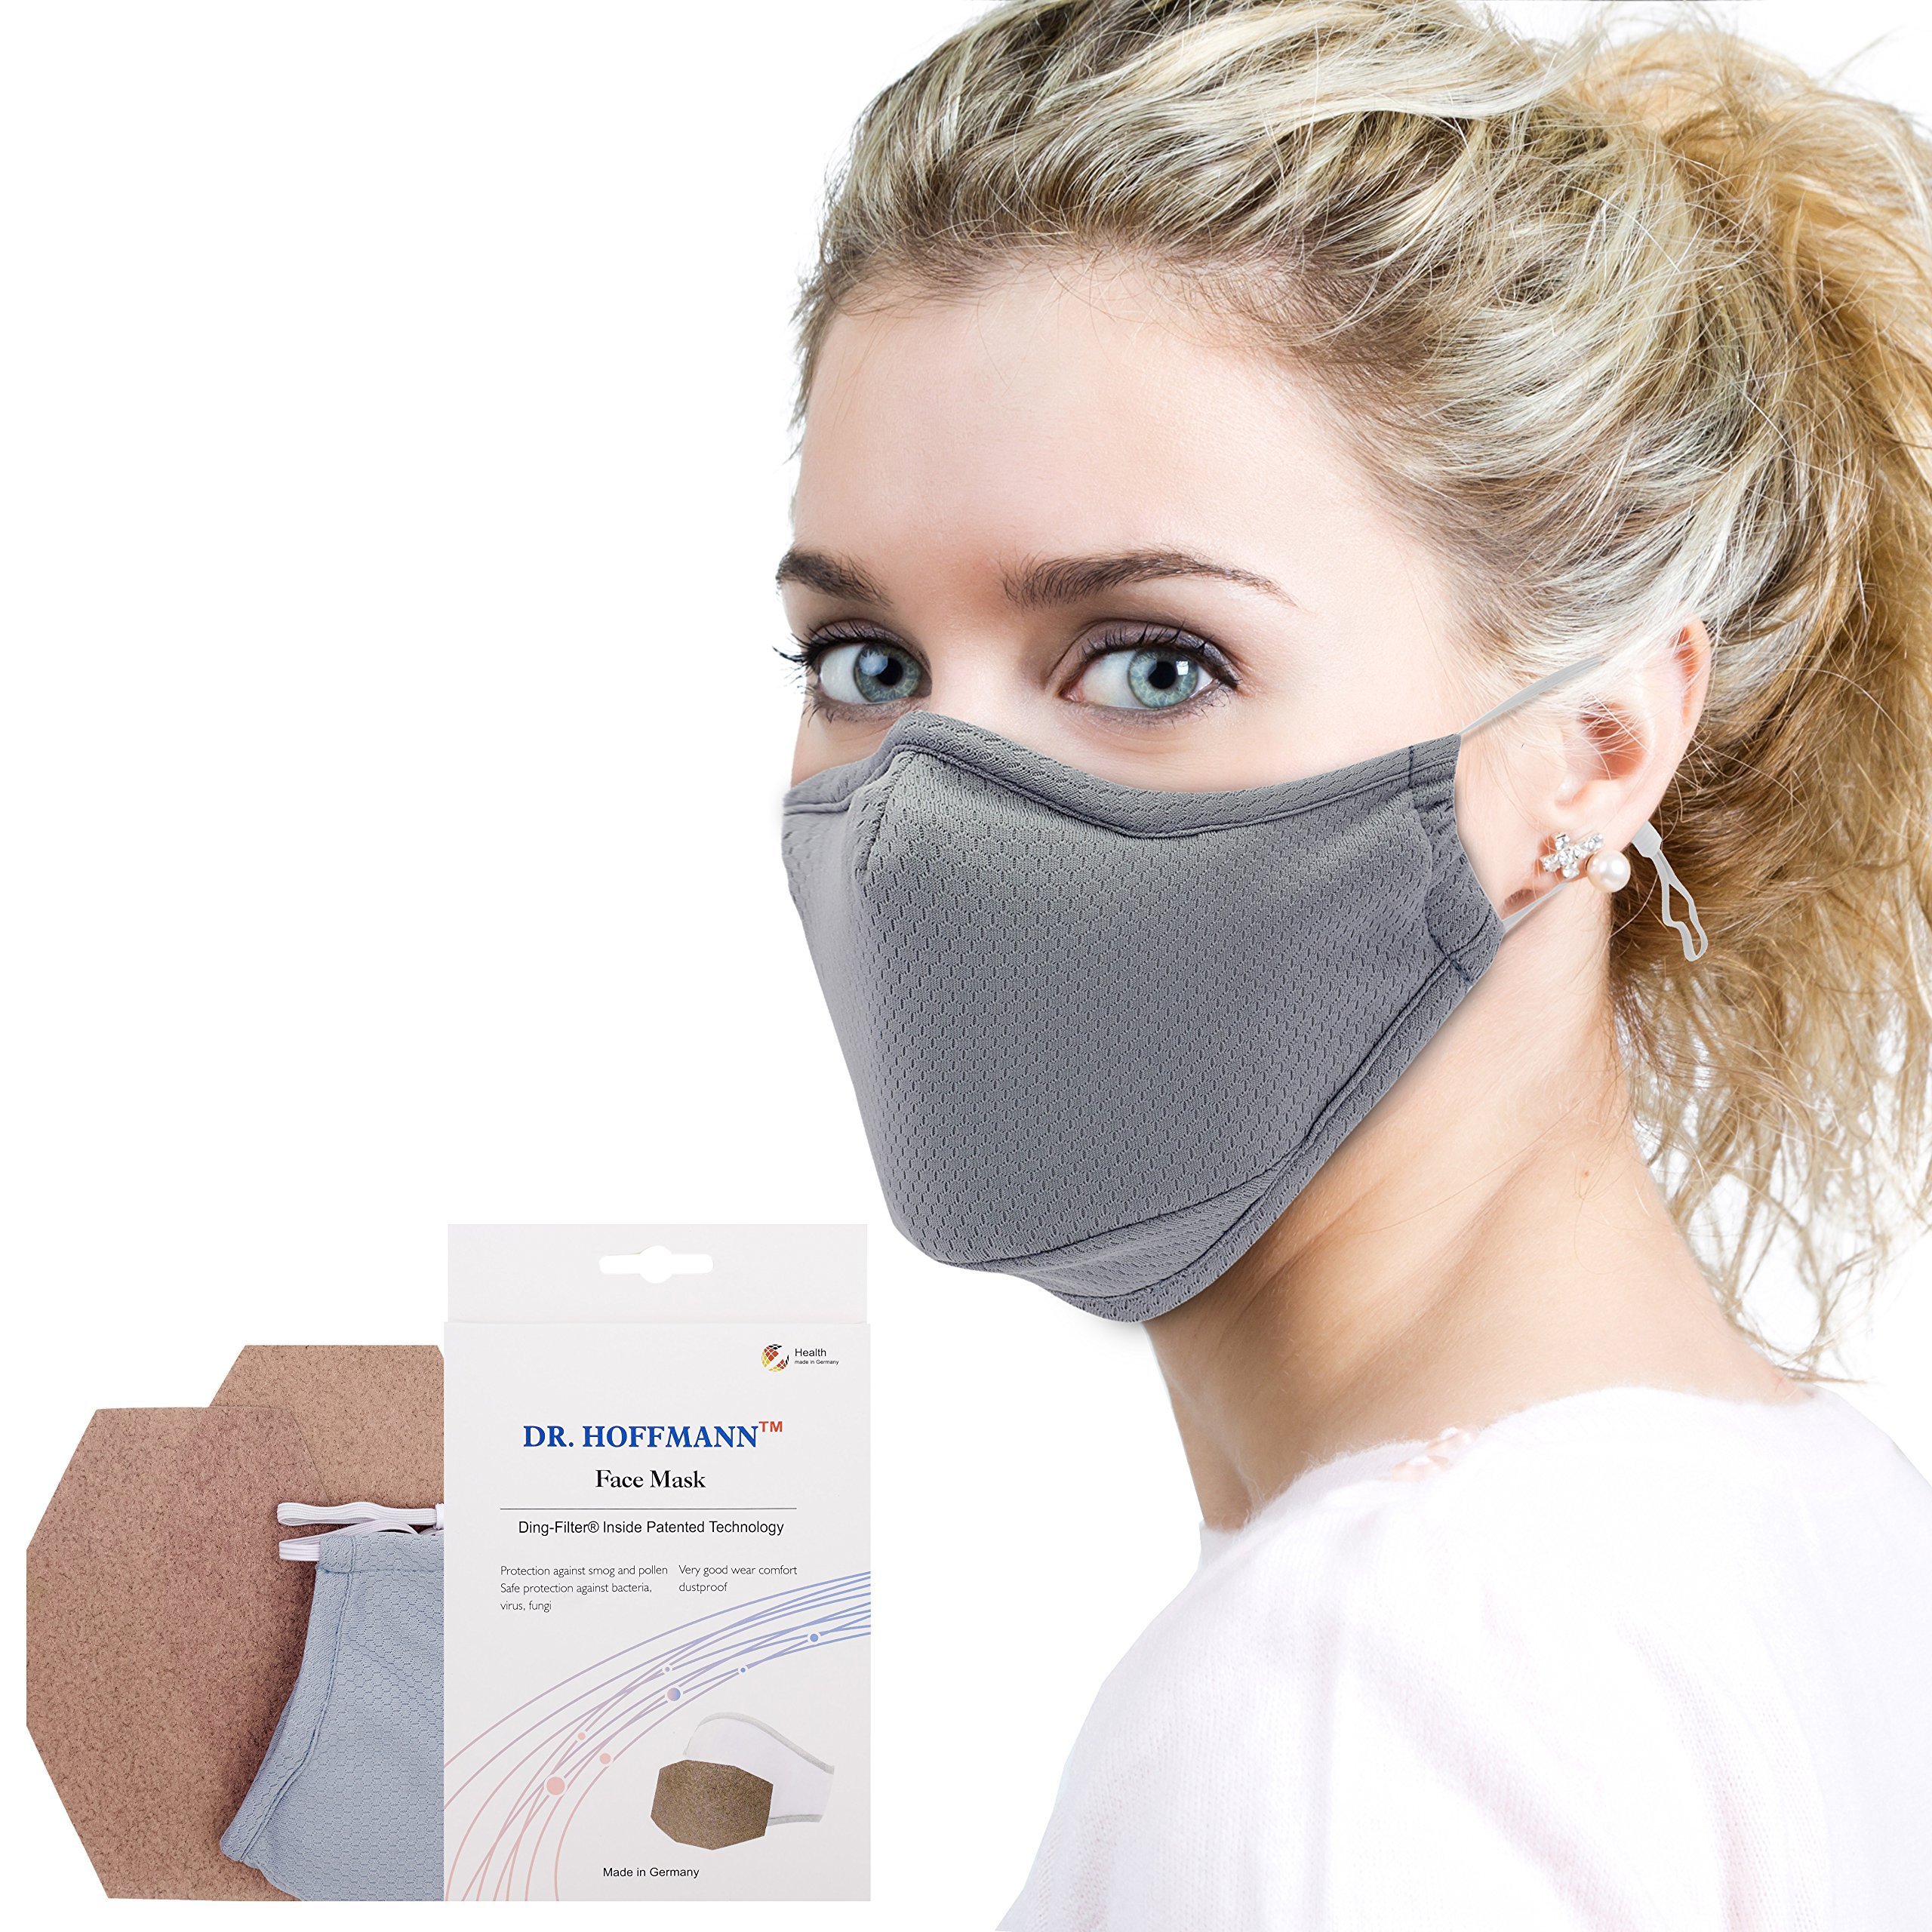 Dr. Hoffmann Allergy Mask - Germ Mask - Anti Dust, Pollution, Pollen and Flu Protection - Antimicrobial Kills Viruses/Bacteria/Fungi - Earloop Cotton - Washable - for Men and Women - Gray by Dr. Hoffmann Face Mask